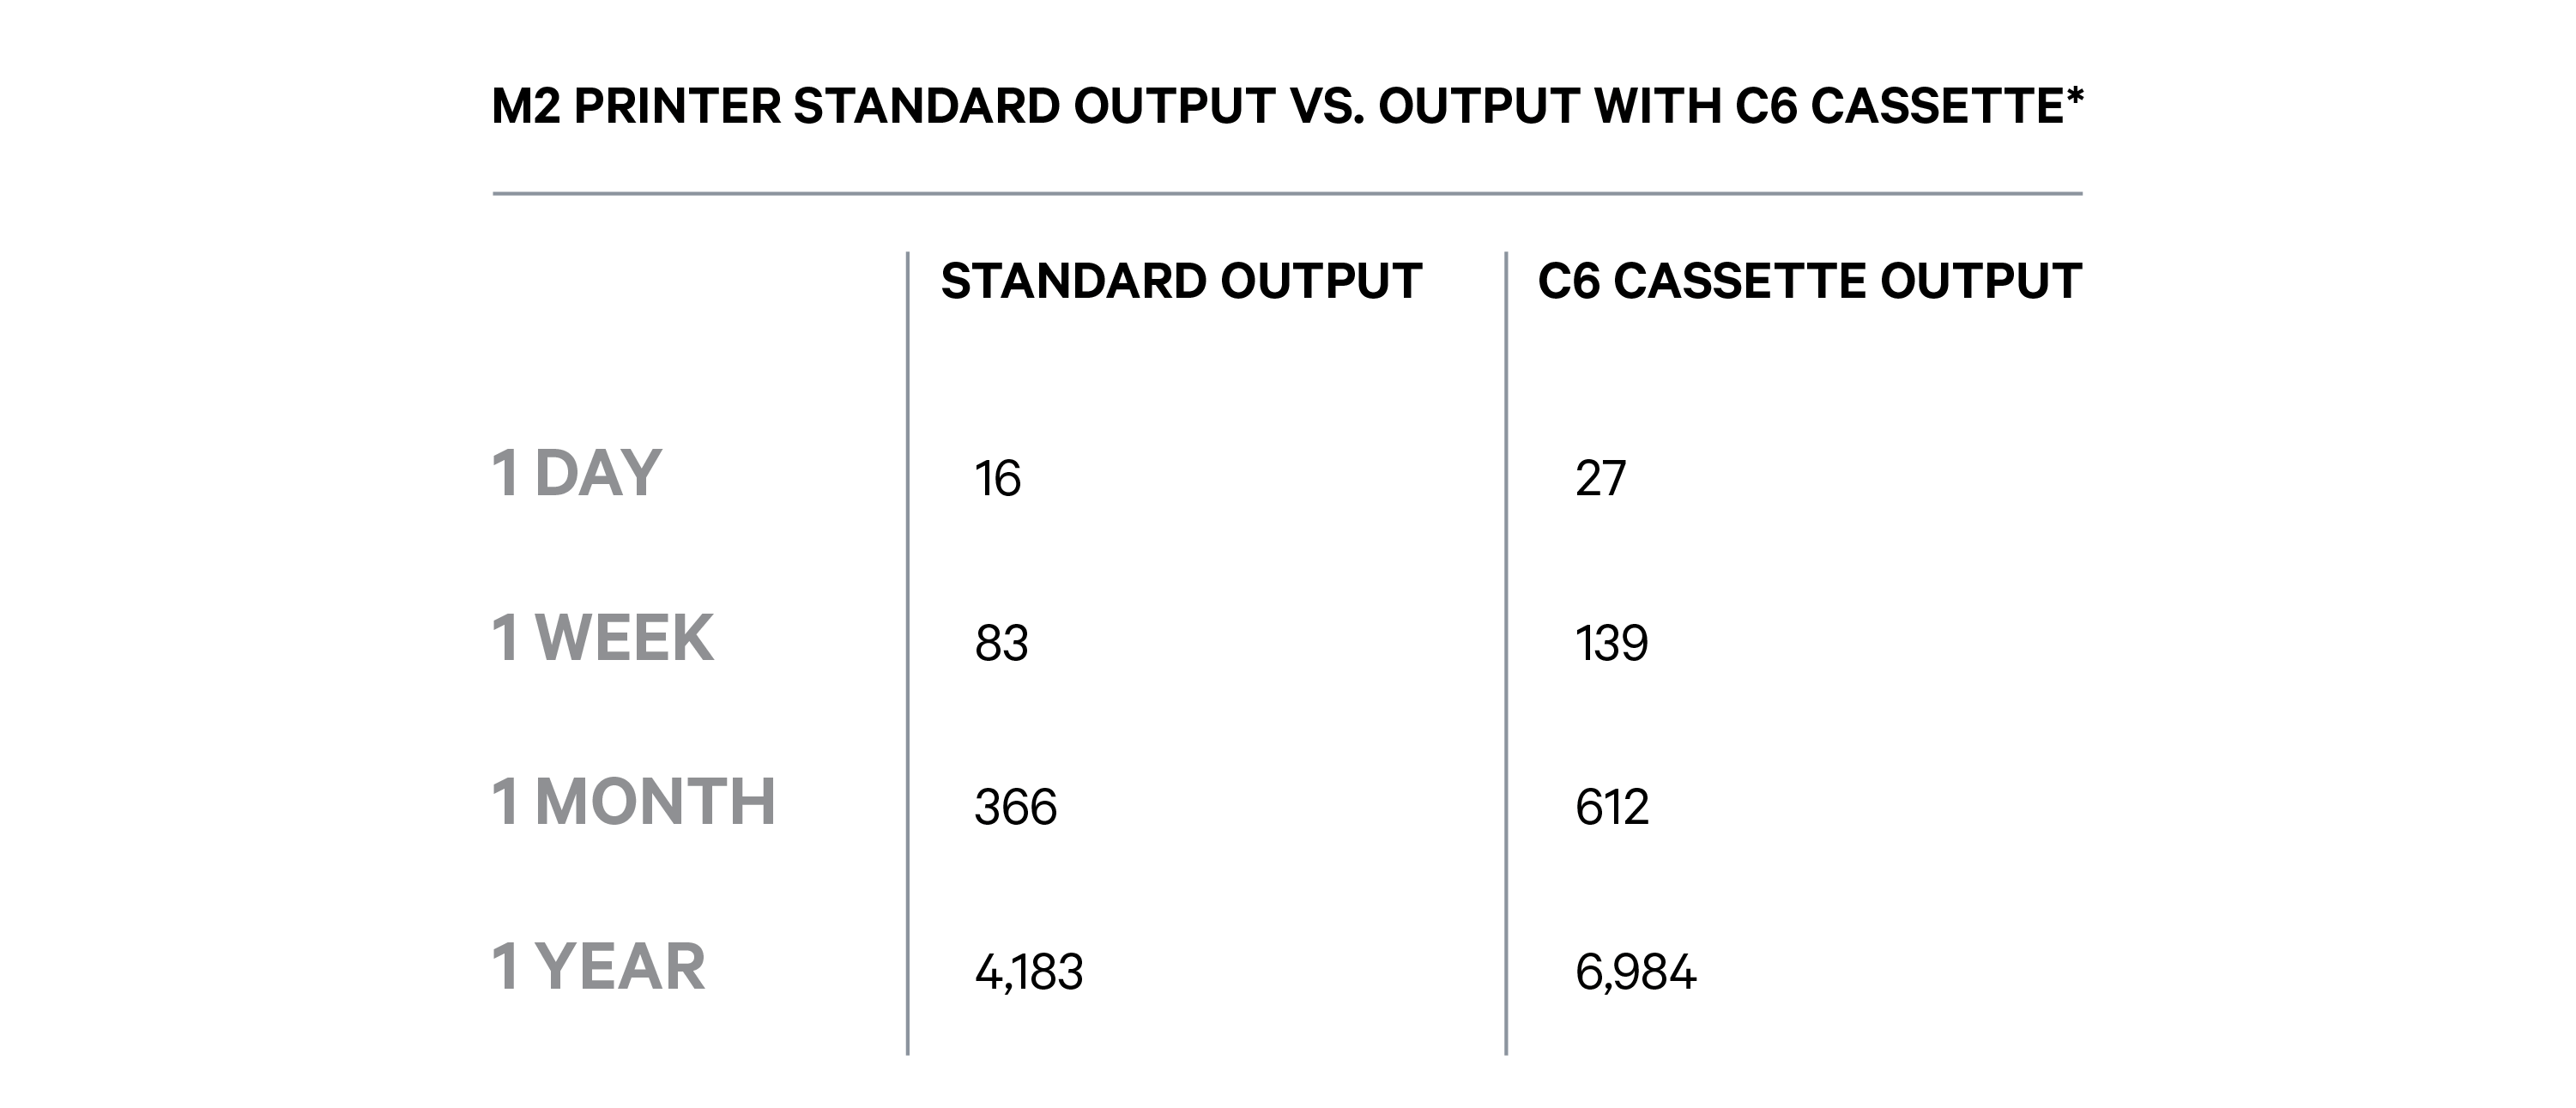 M2 Printer Output With Standard vs. C6 Cassette